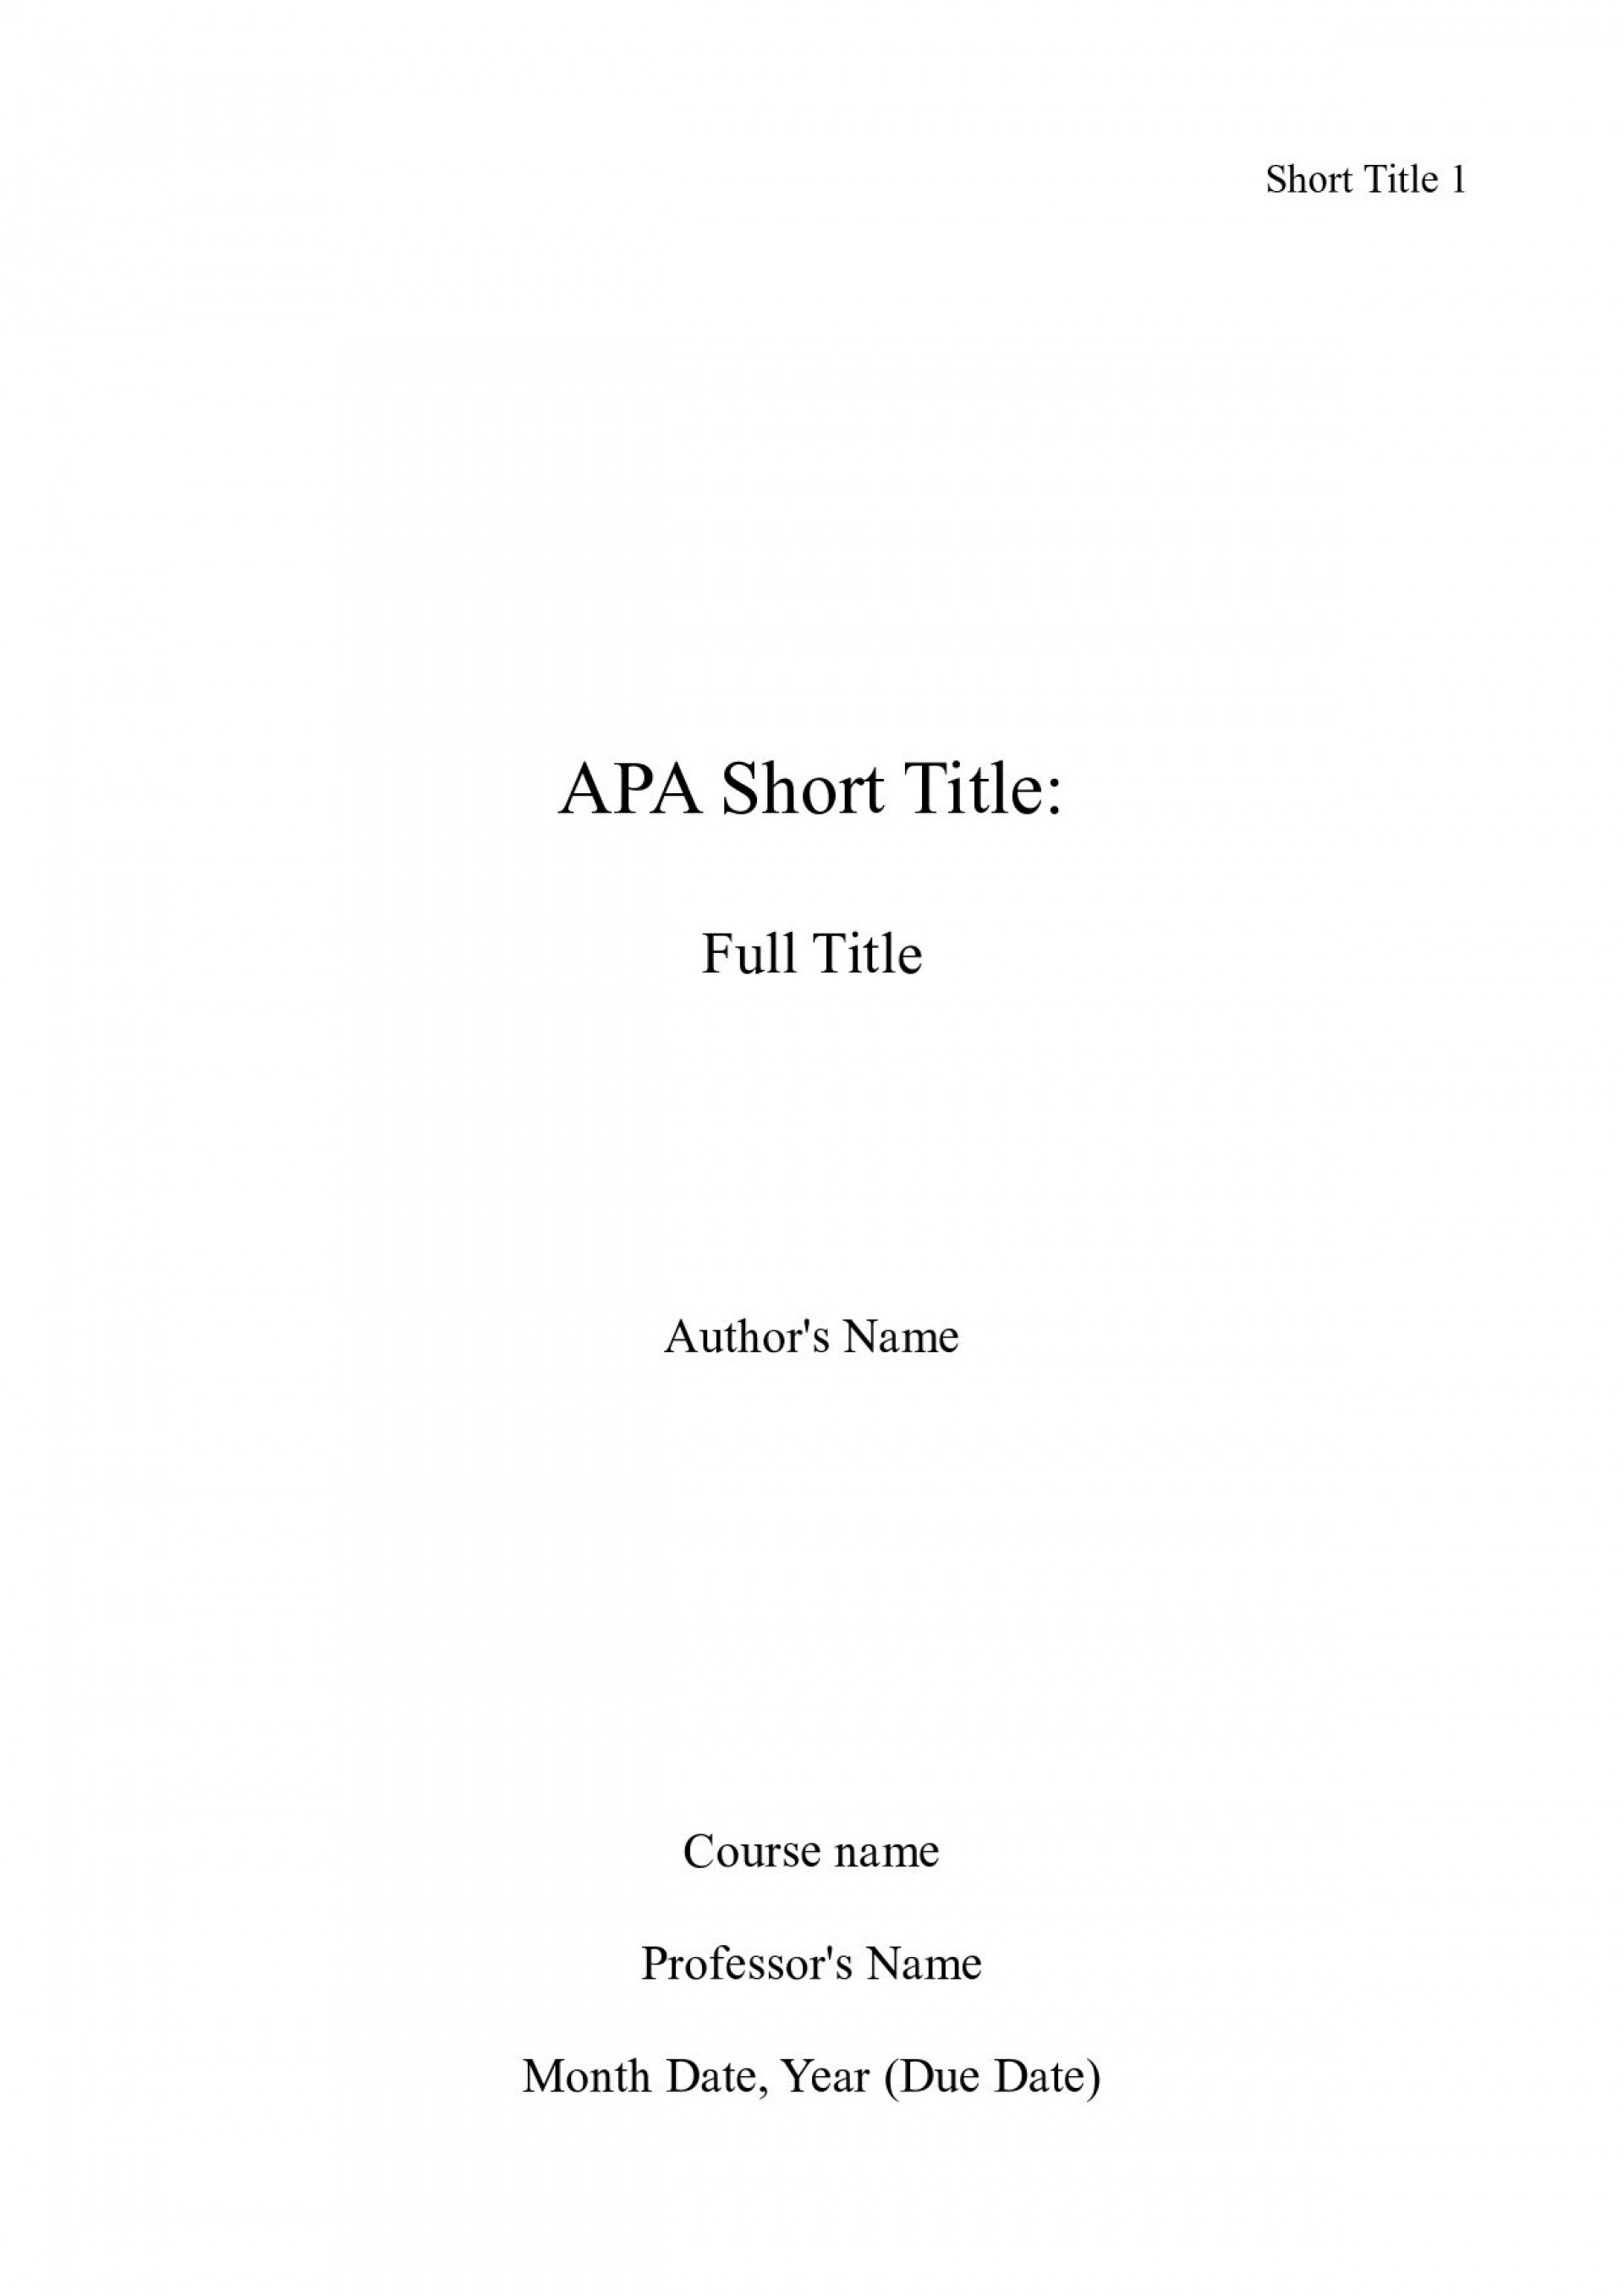 007 Research Paper Apa Format Cover Page Fearsome Style Abstract 1920